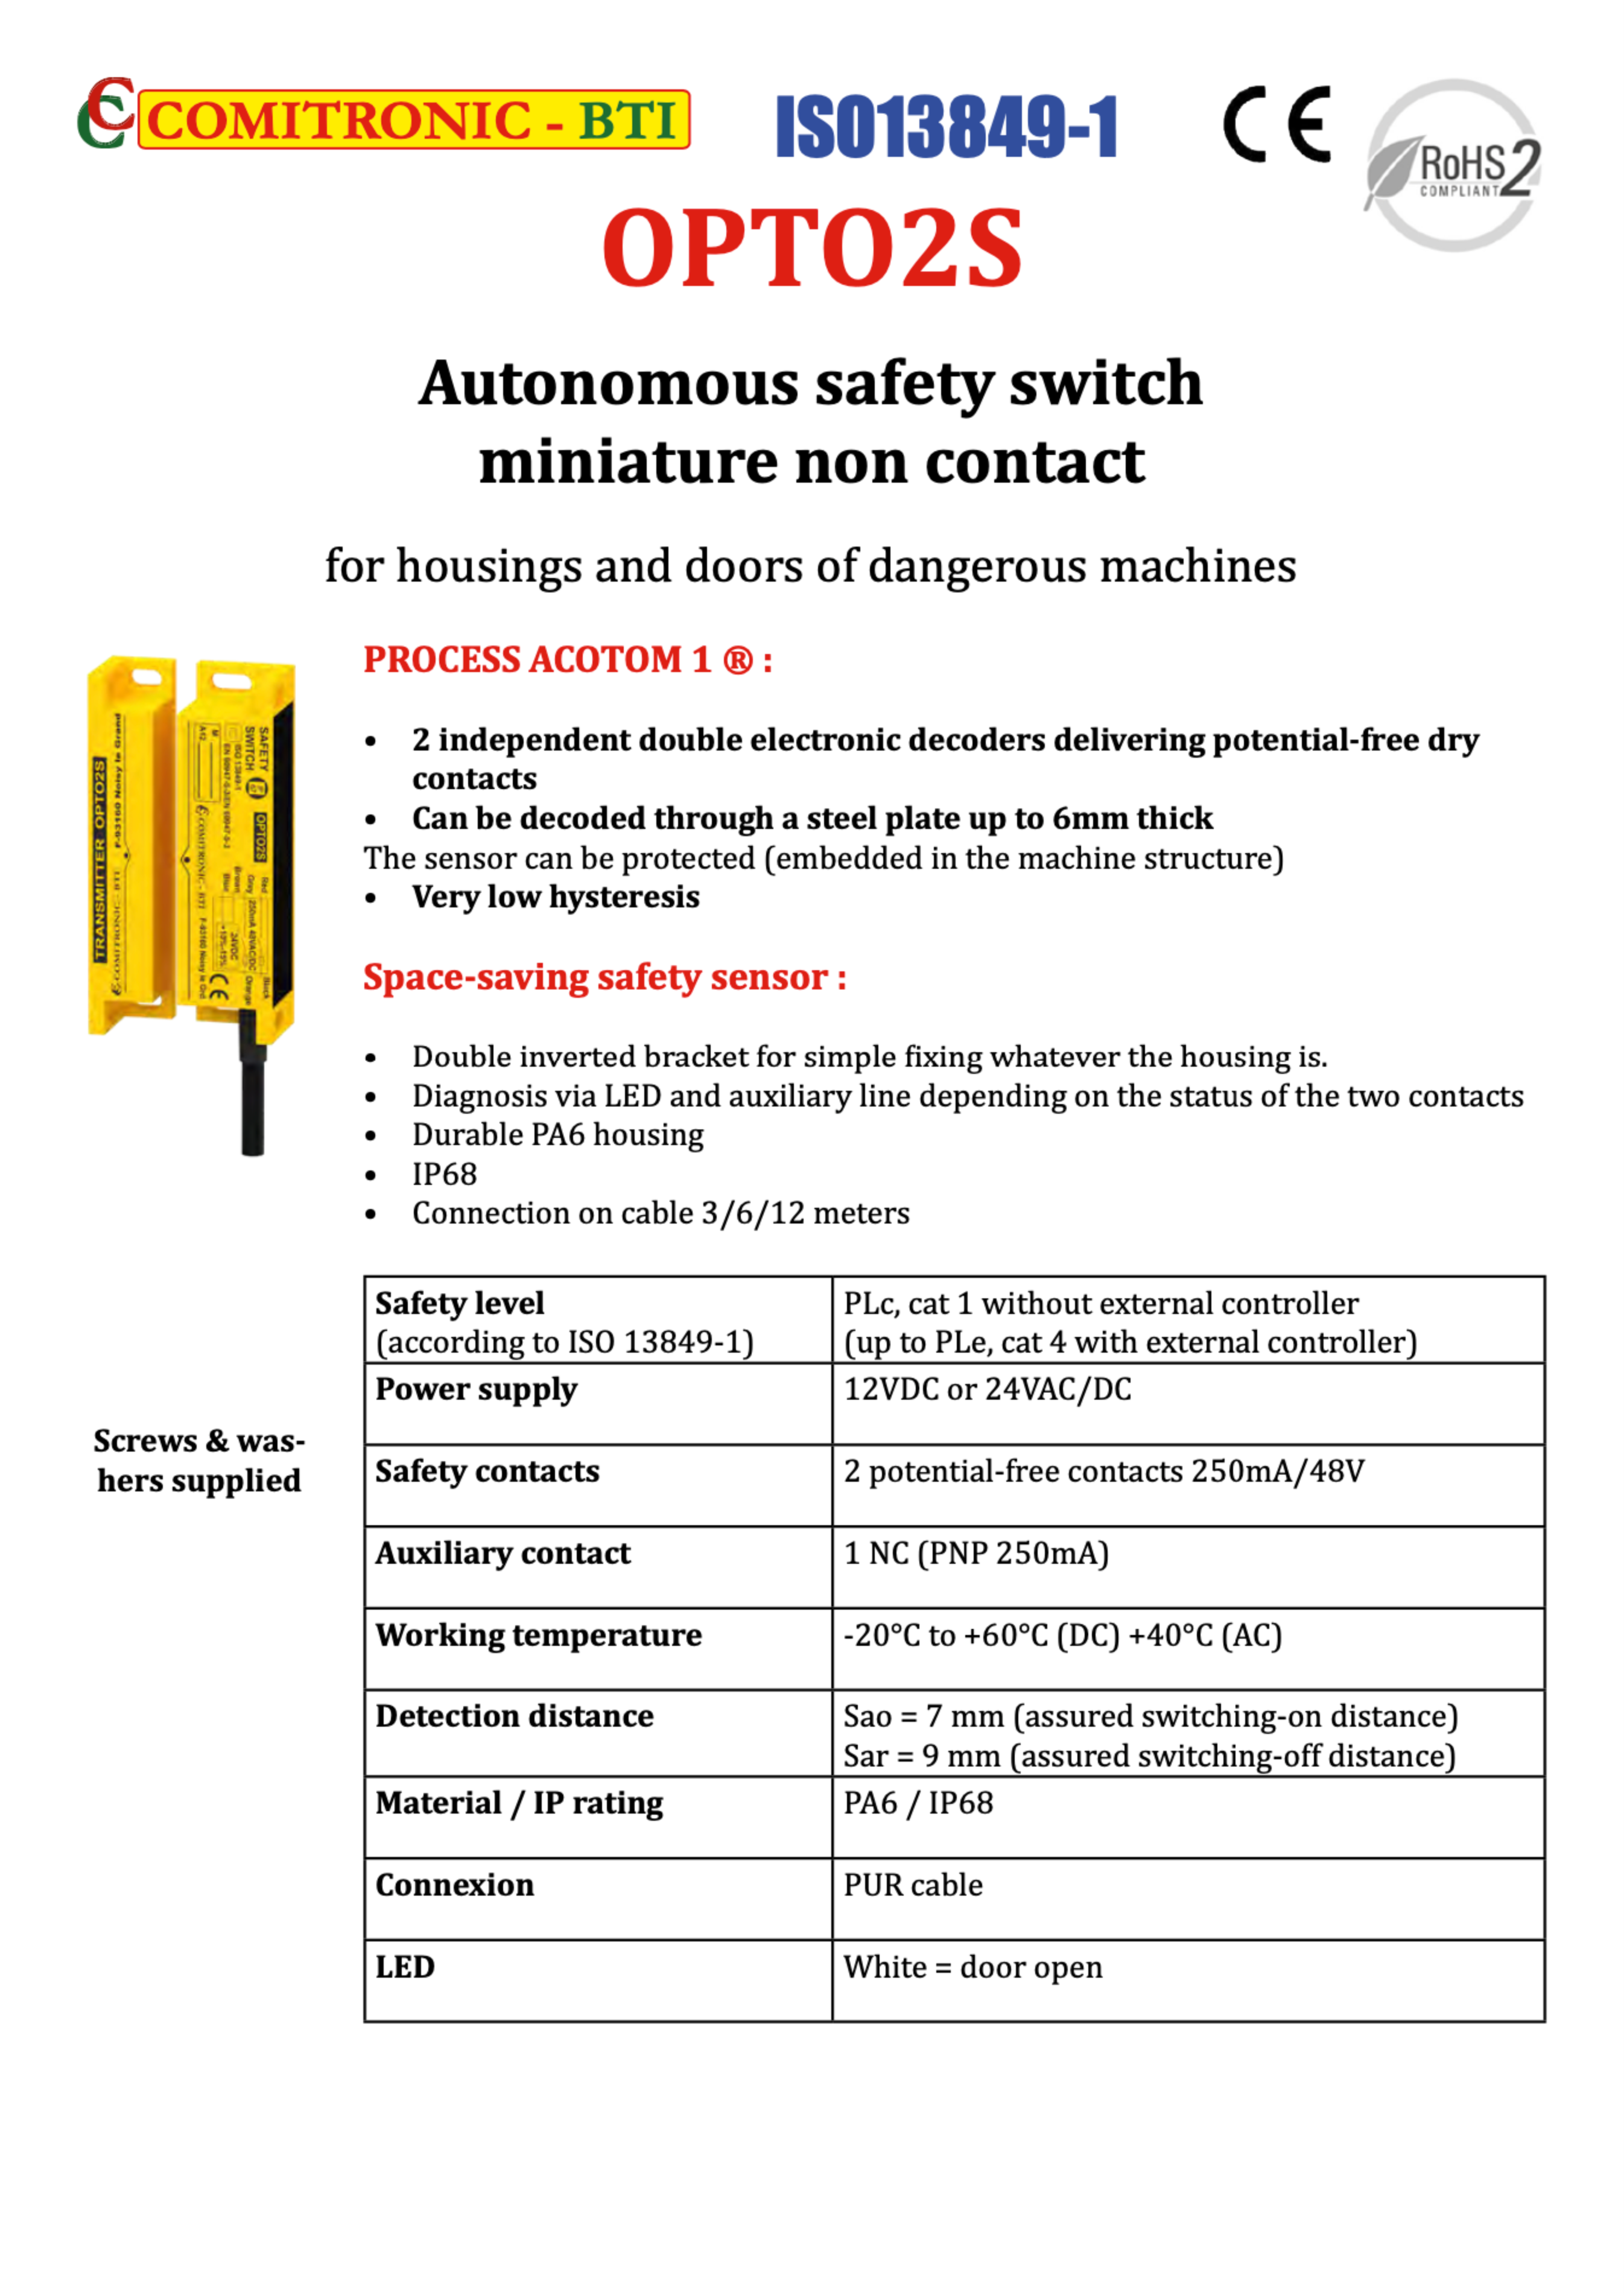 Product sheet OPTO2S